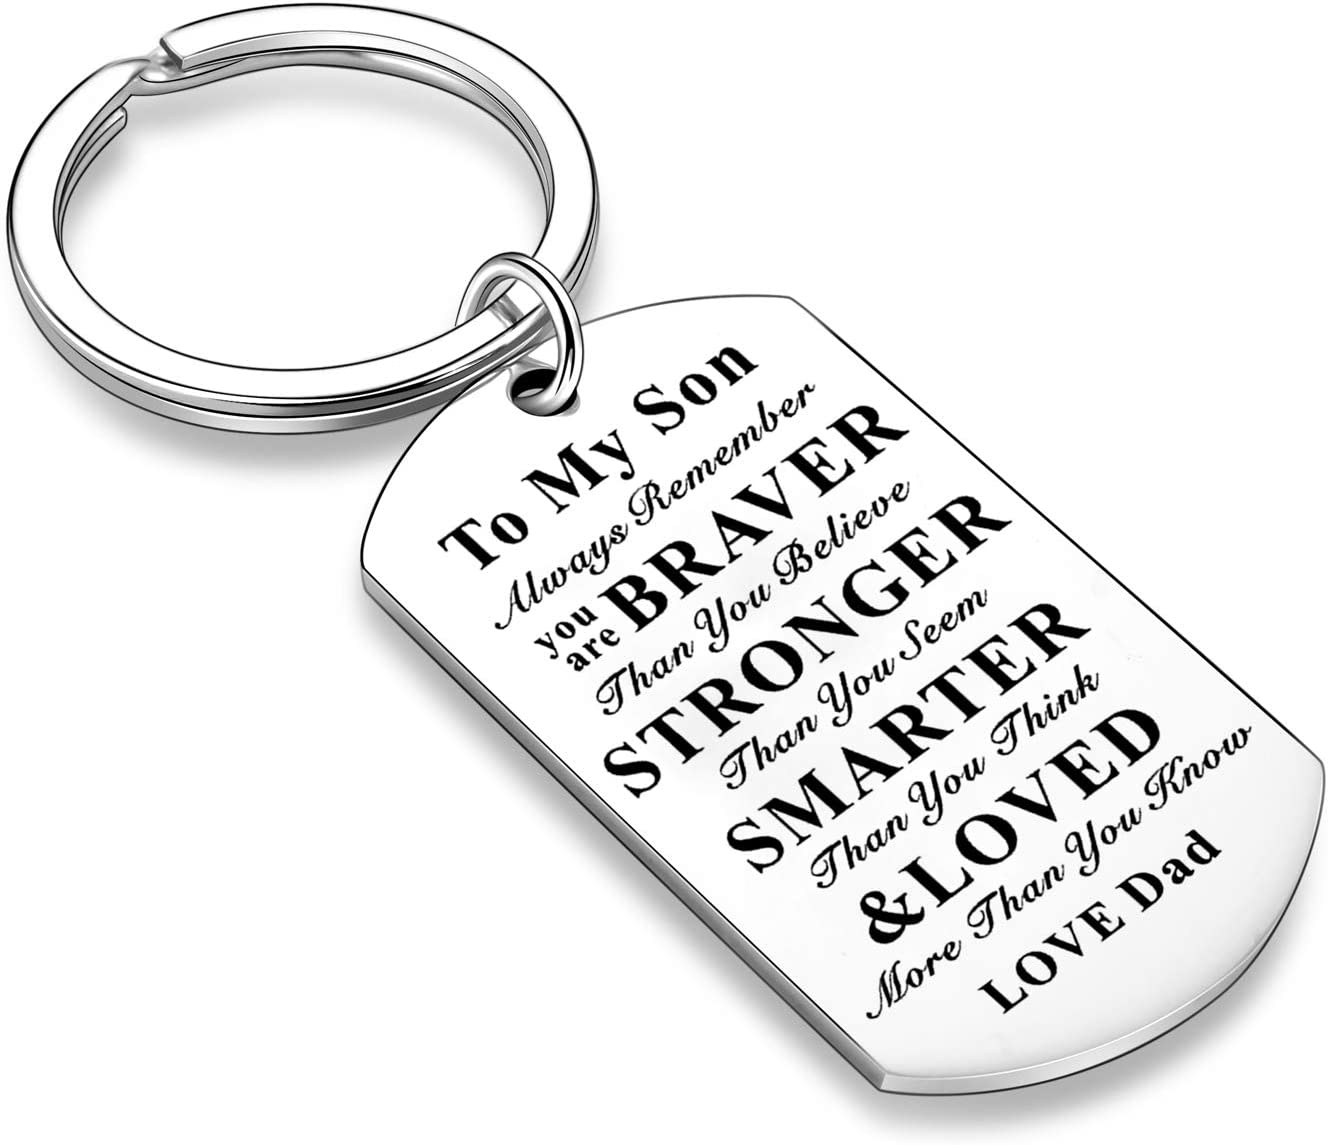 Inspirational Keychains for Daughter Son Gifts Dog Tag Keychain Belive Confident Gifts for Son Daughter from Mom Dad Dad to Daughter